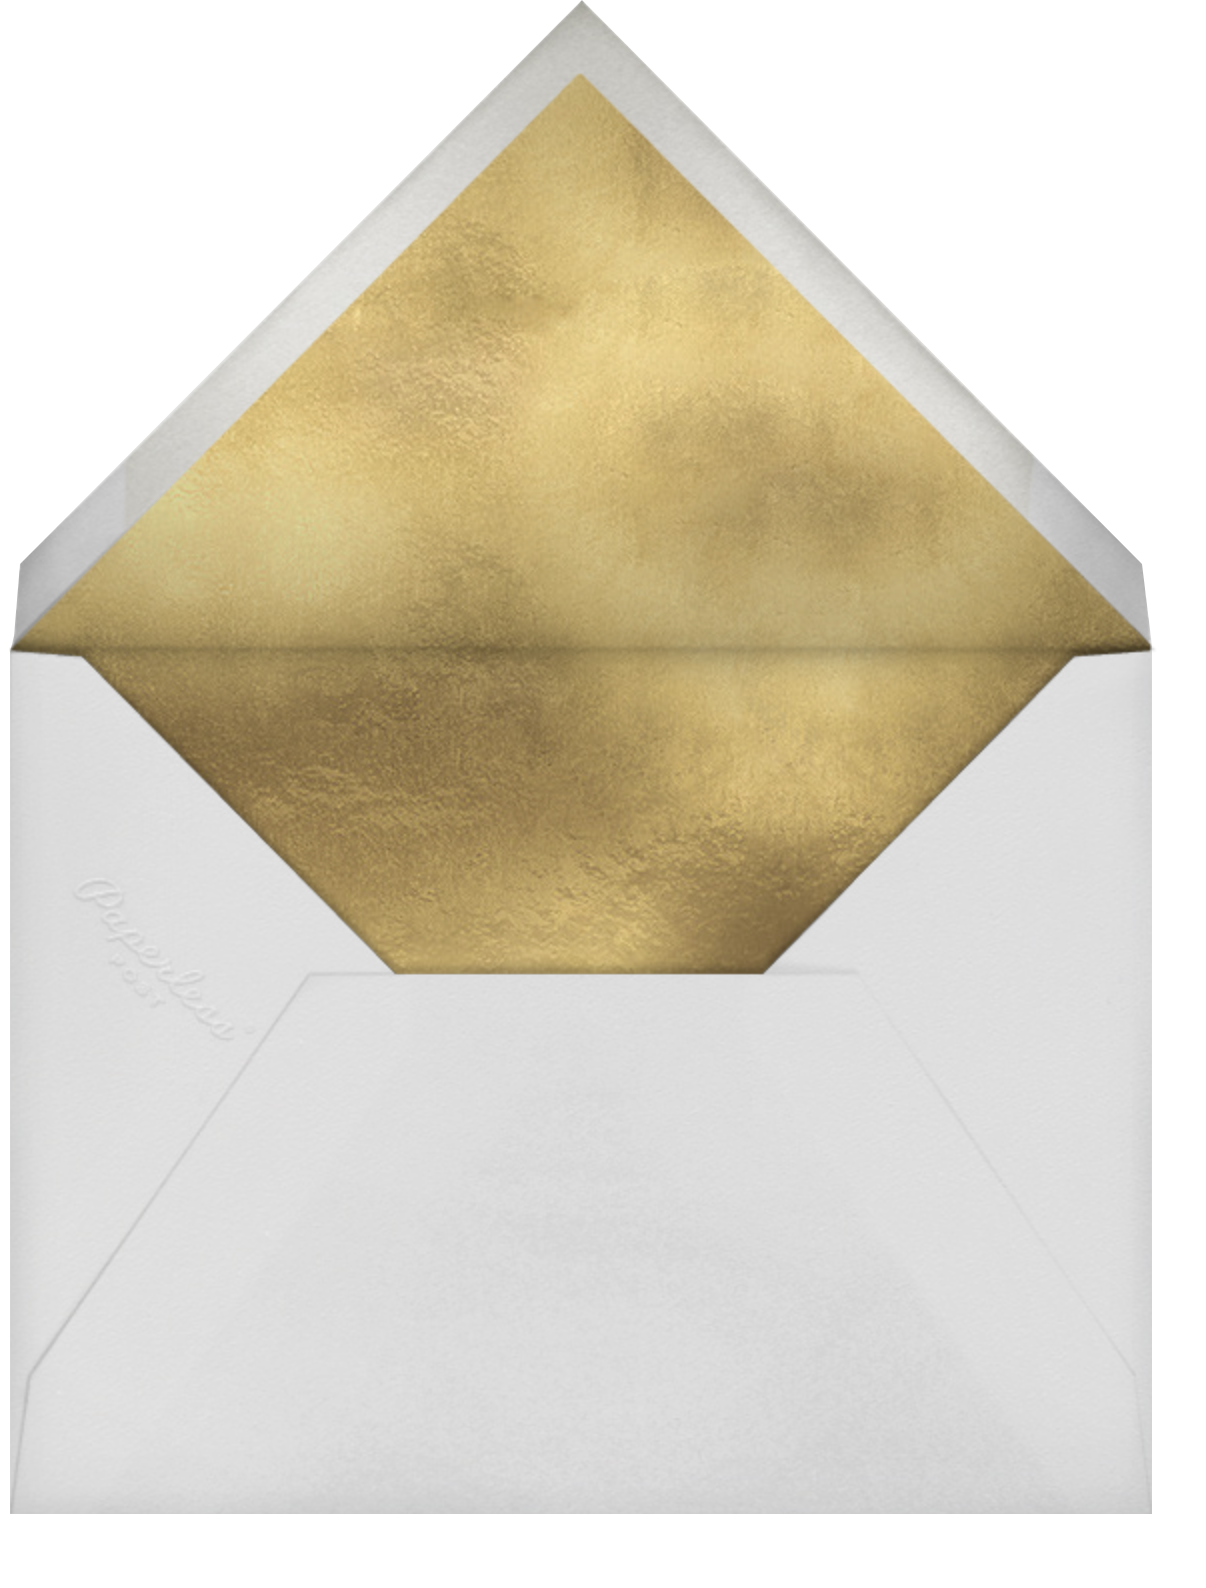 Humble Hearts - Sugar Paper - Anniversary party - envelope back